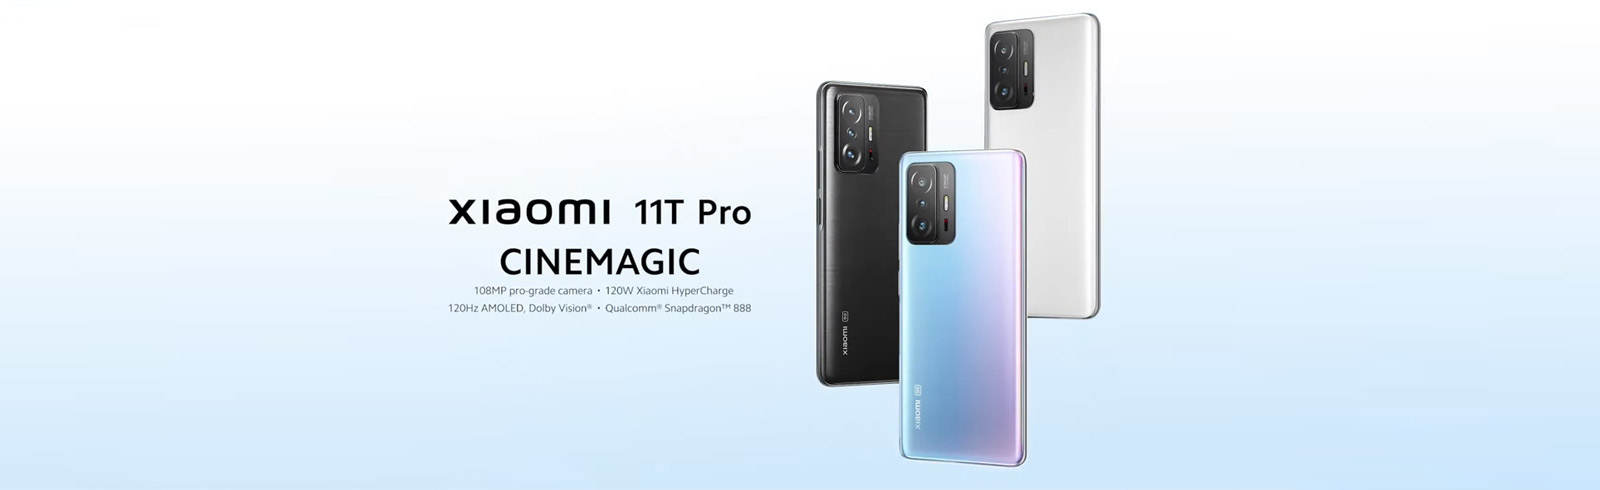 """The Xiaomi 11T and Xiaomi 11T Pro are unveiled with 6.67"""" AMOLED displays, 5000 mAh batteries"""